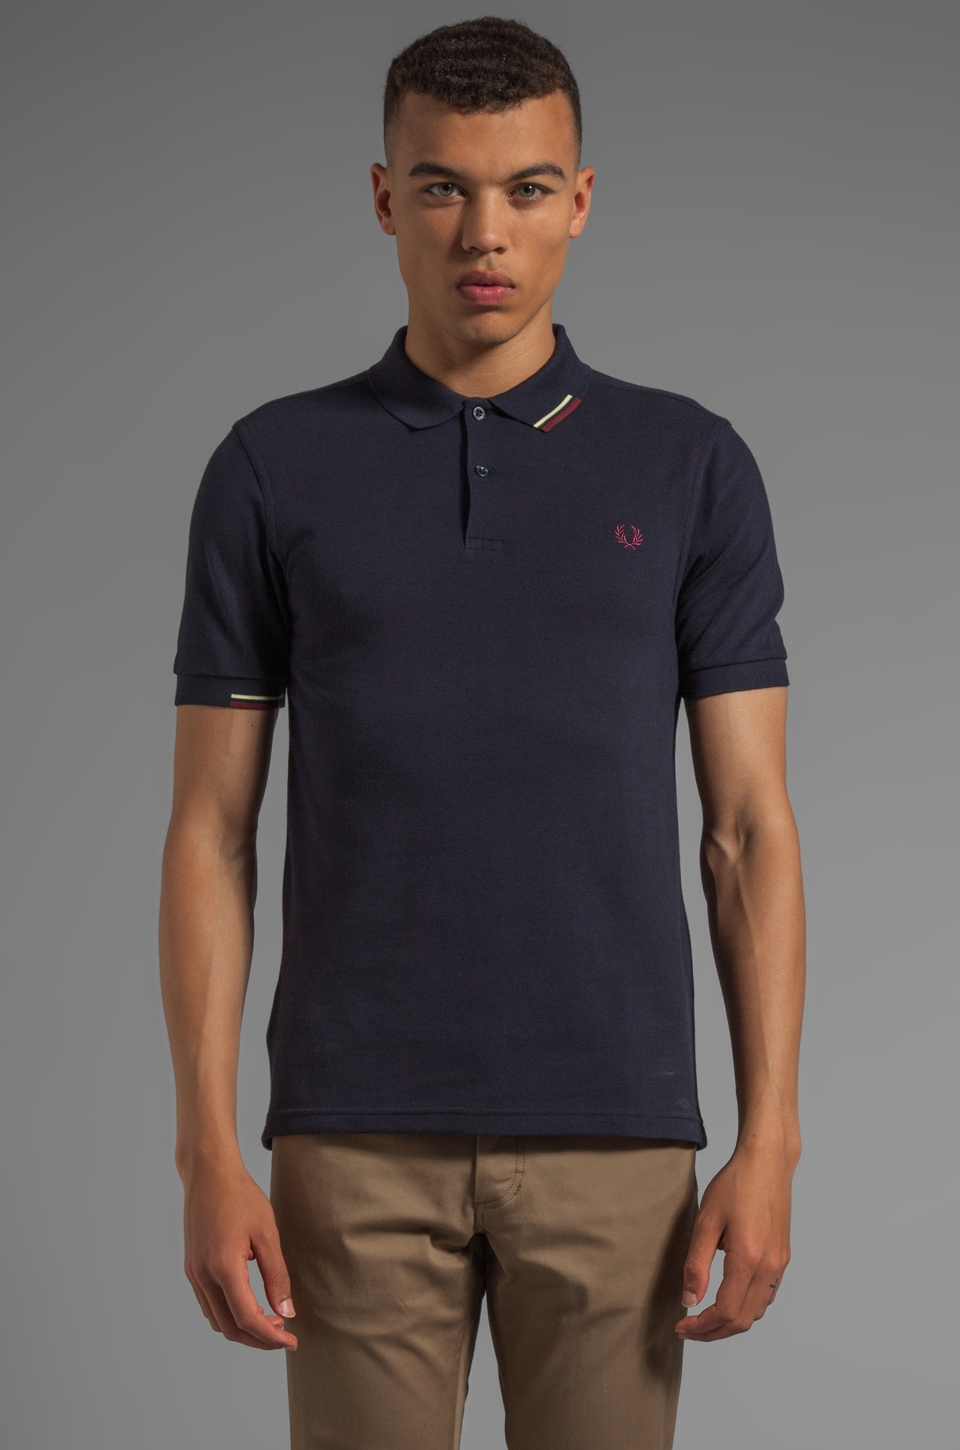 Fred Perry Start Stop Tipping Shirt in Navy